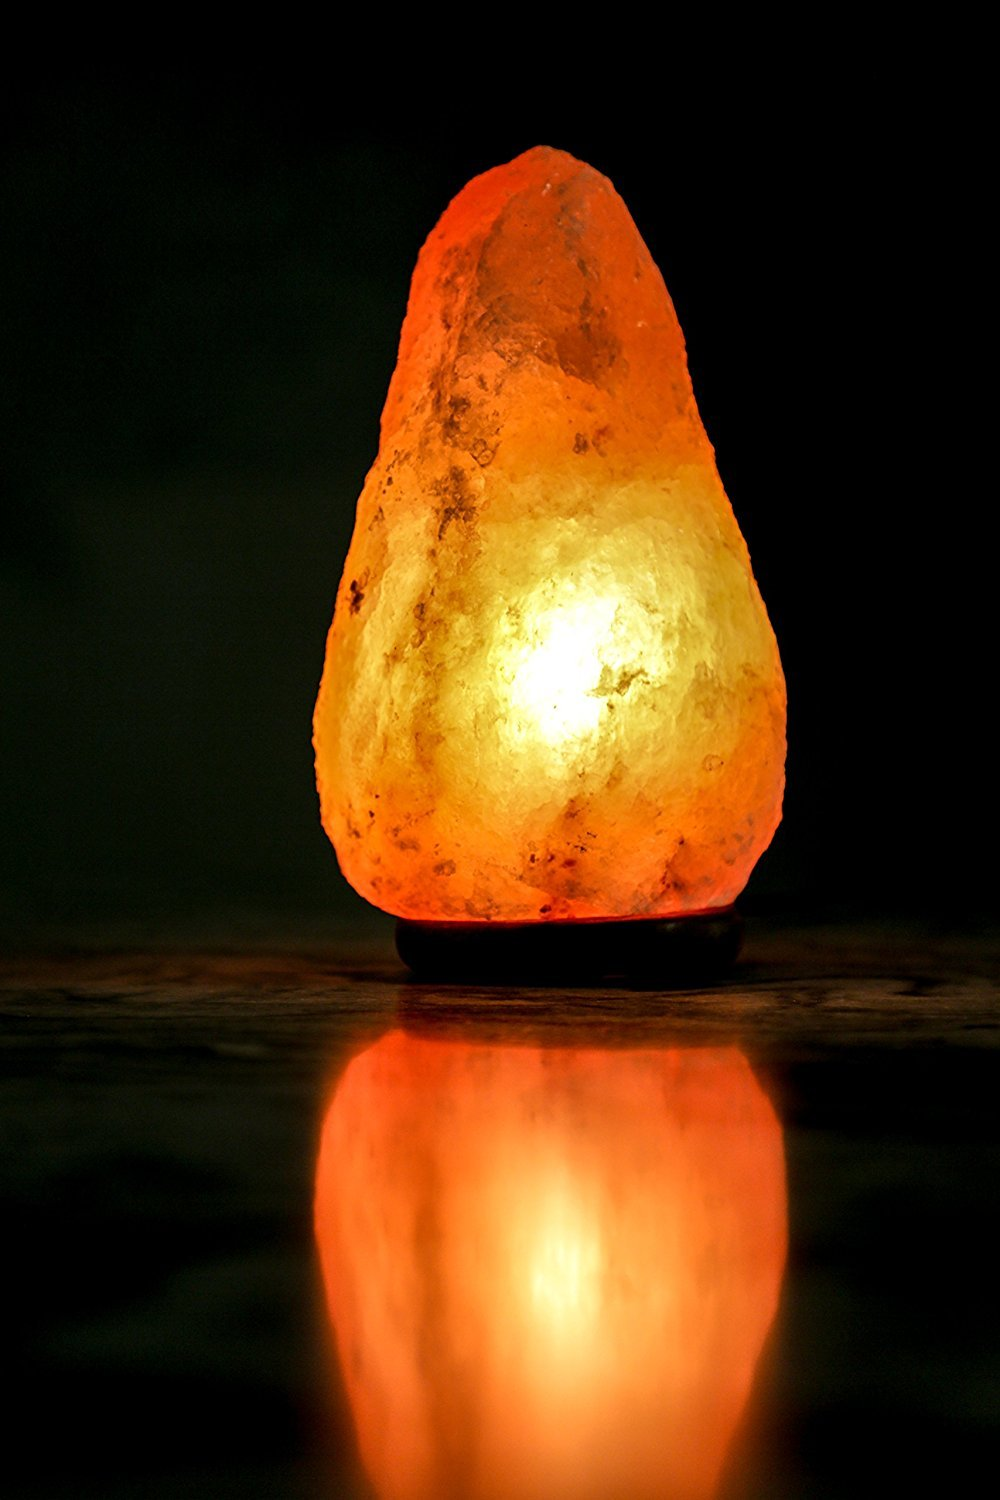 8 to 9 Inch Himalayan Salt Lamp Hand Carved, Natural Wood Base with Dimmer Control, 6-9 lb. Mined from Himalayan Mountain Range, Beautiful Amber Color, 100% Authentic Himalayan Salt Lamp by IKON (Image #7)